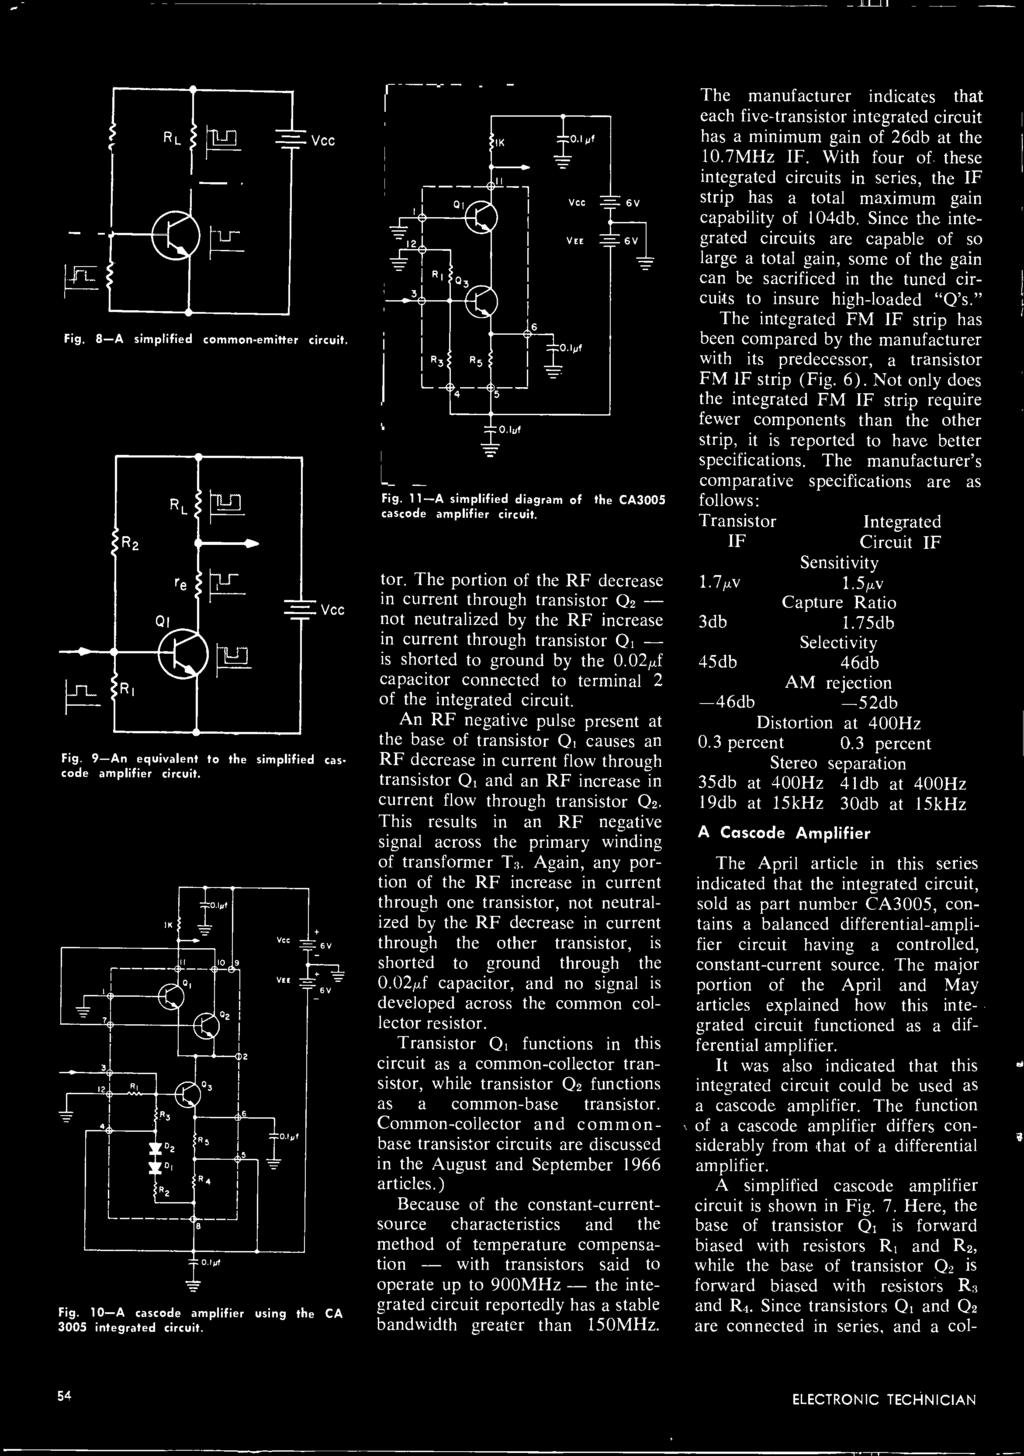 Servicing A Modern Color Tv Protecting Electronic Circuits The Onetube Transmitter Schematic Diagrams And Circuit Descriptions 024 Capacitor Connected To Terminal 2 Of Integrated